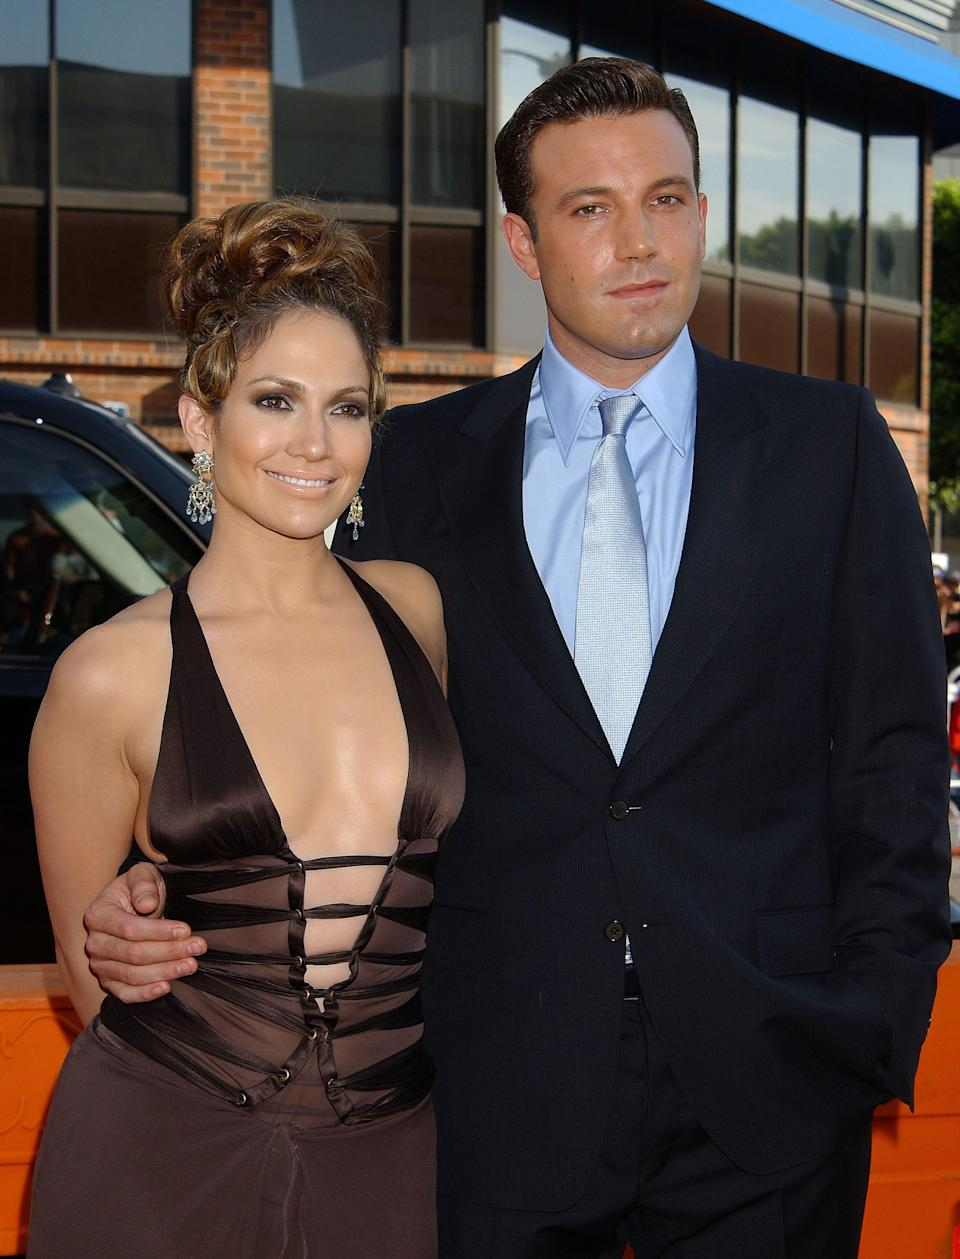 """Jennifer Lopez and Ben Affleck posing together at the premiere of """"Gigli."""""""